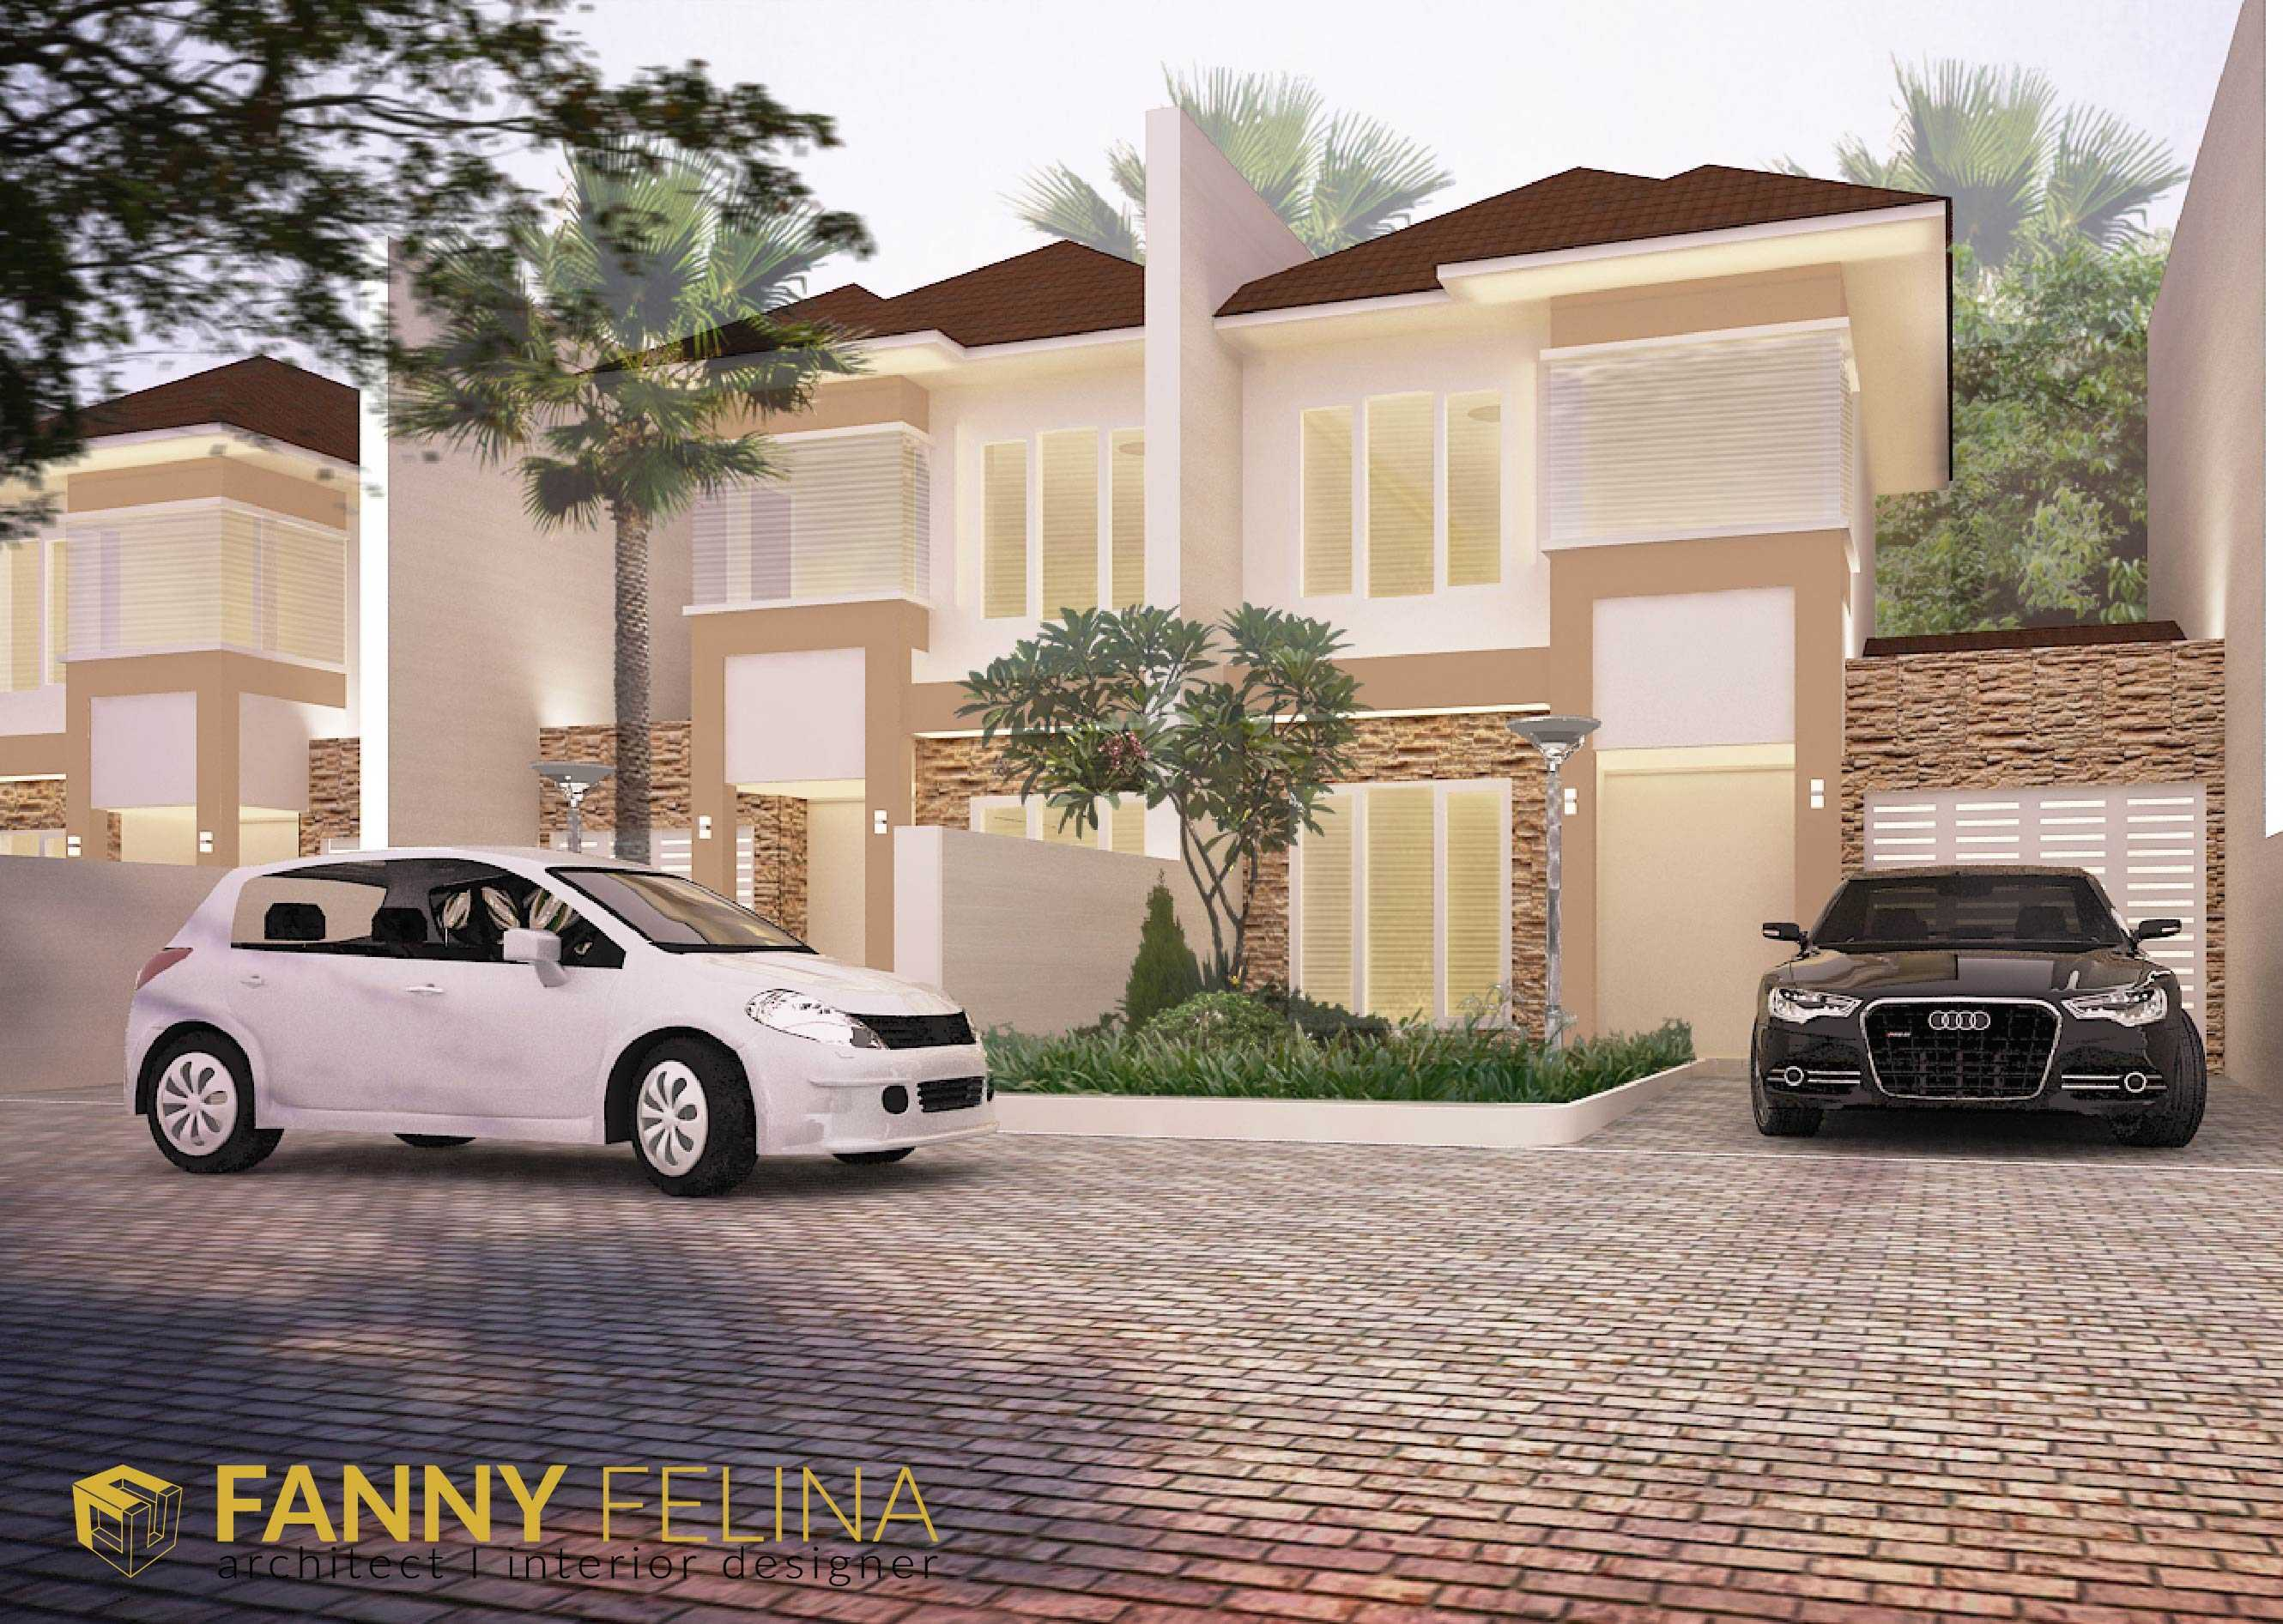 Fanny Felina Architecture & Interior Design Vv X House Surabaya, Surabaya City, East Java, Indonesia Surabaya, Surabaya City, East Java, Indonesia 01 Modern  34591